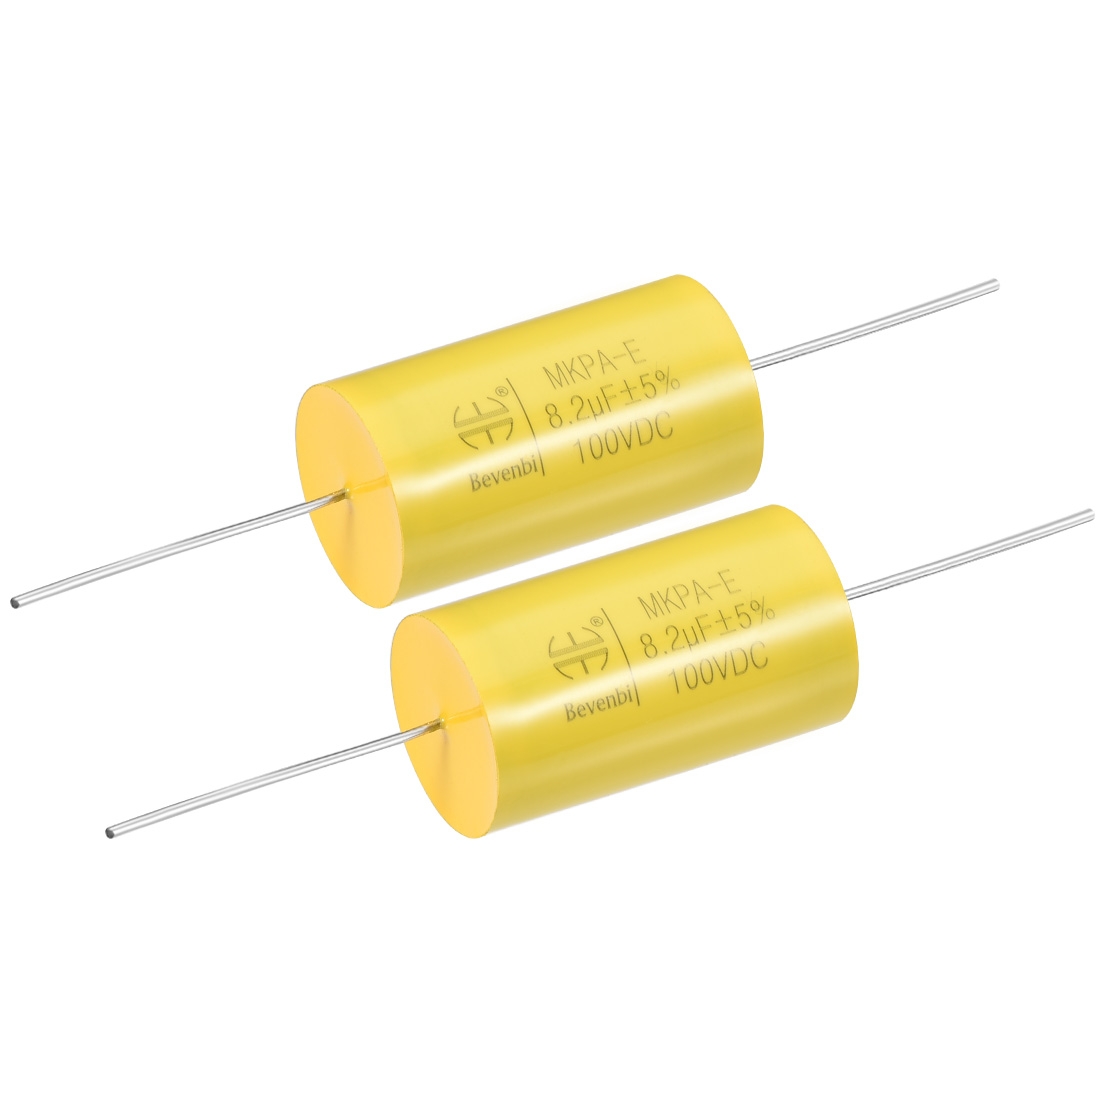 Film Capacitor 100V DC 8.2uF MKPA-E Round Polypropylene Capacitors Yellow 2pcs